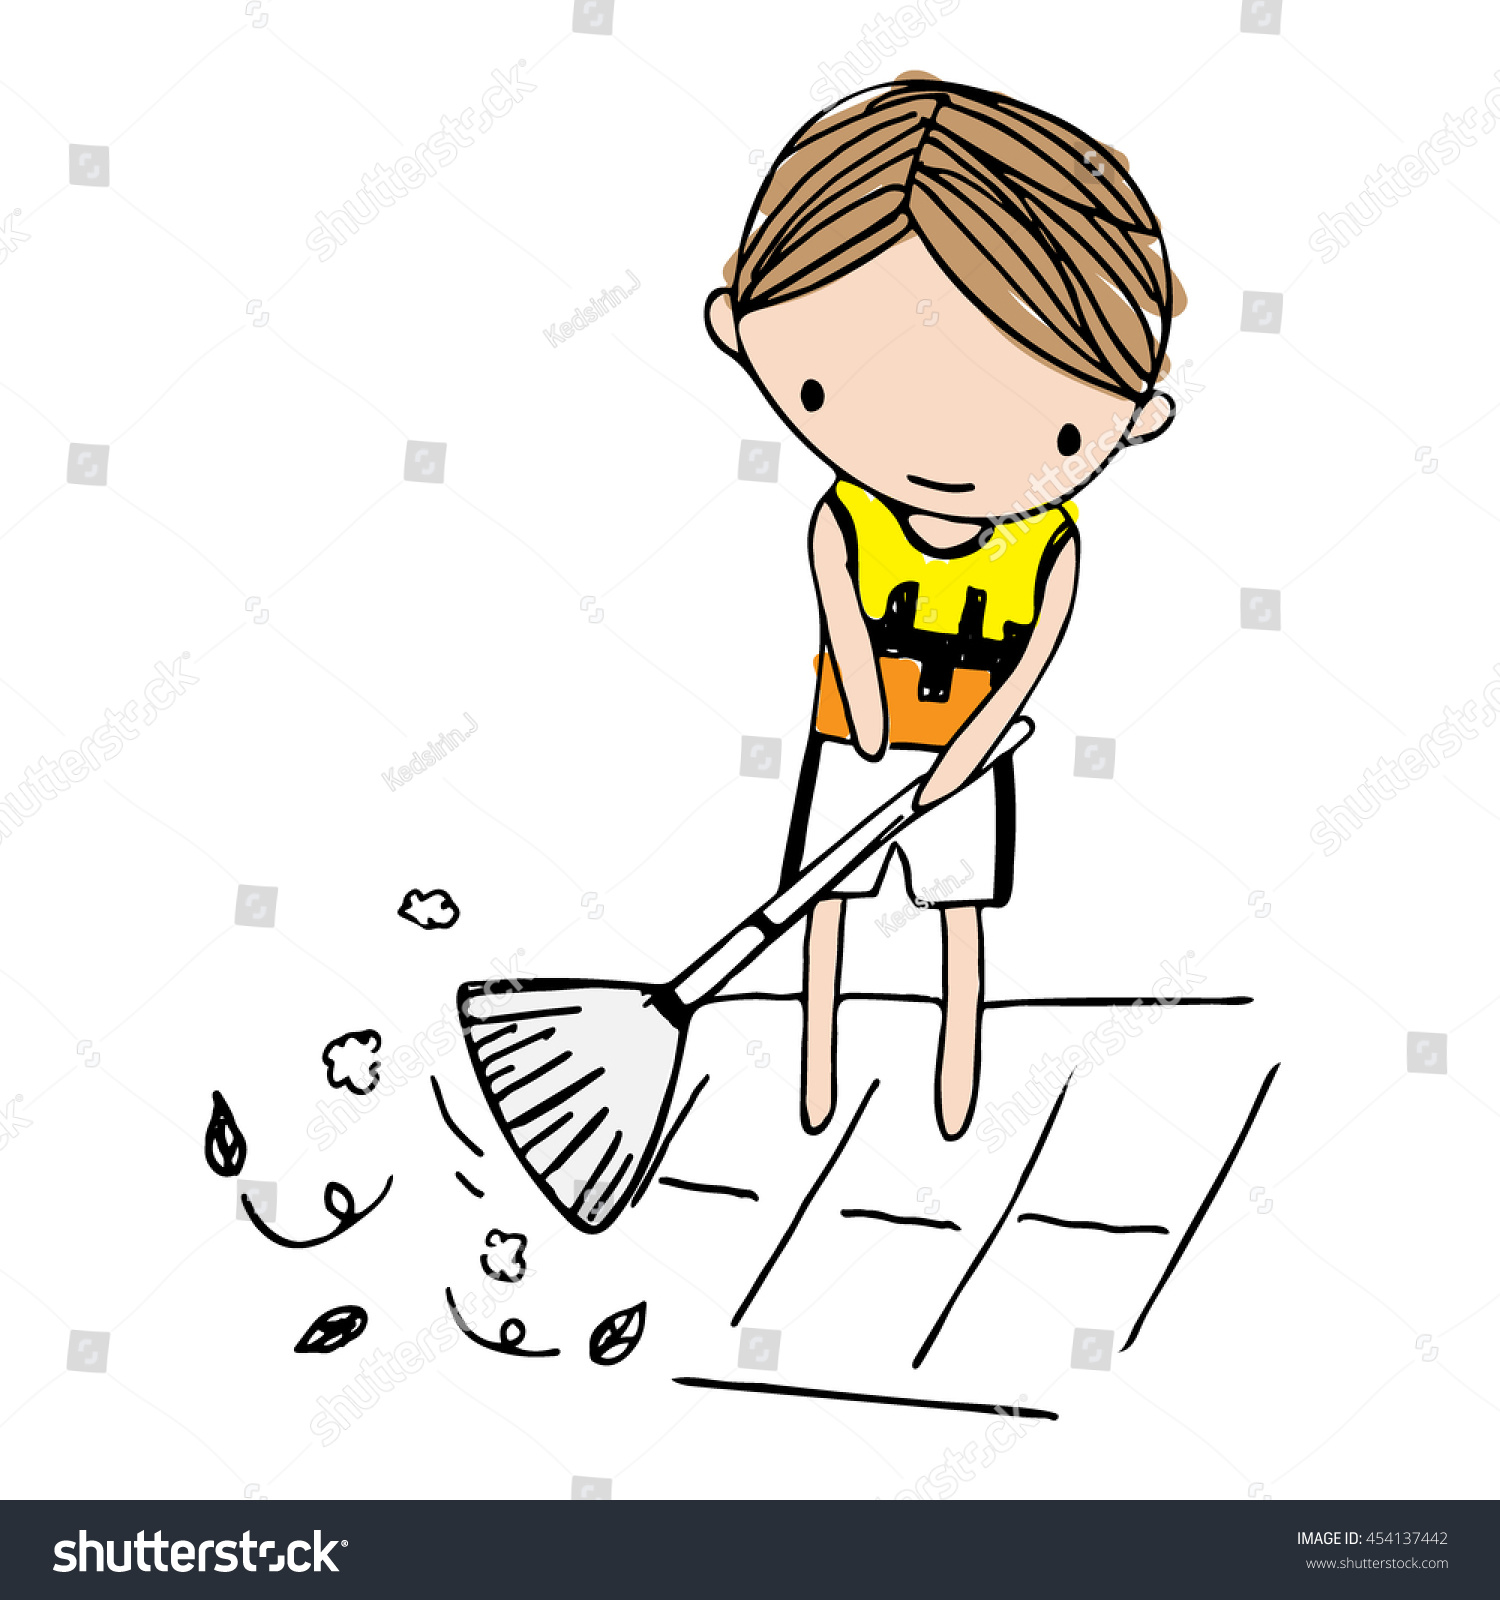 vector cartoon boy sweeping leaves on stock vector royalty free 454137442 https www shutterstock com image vector vector cartoon boy sweeping leaves on 454137442